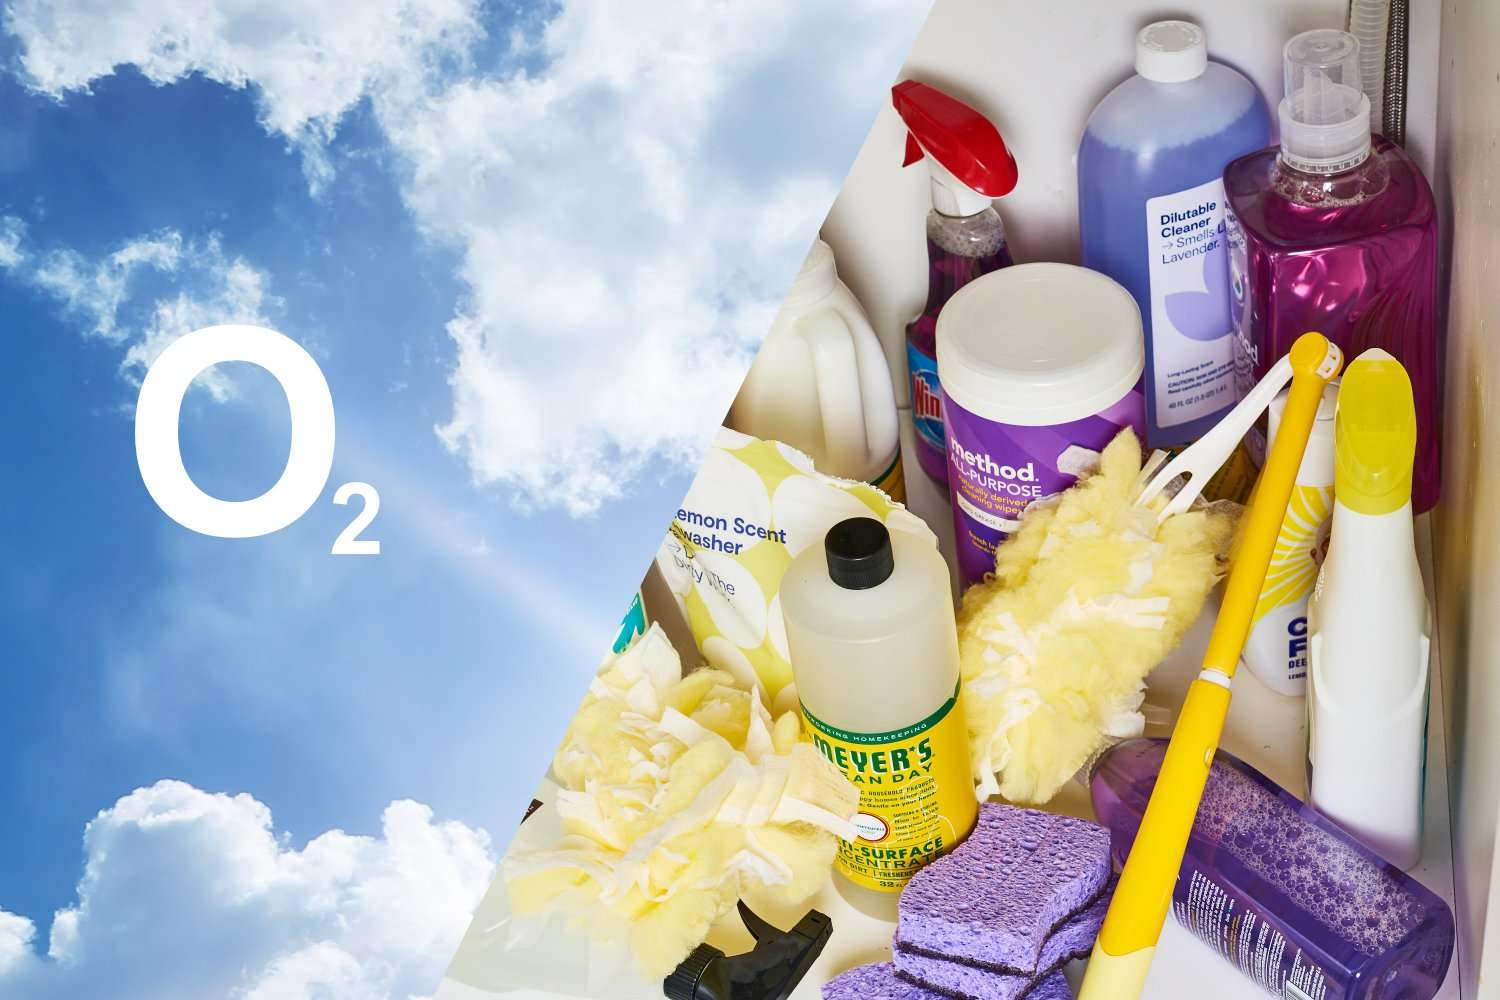 Replace Toxic Cleaning Products With Oxygen - Hydrogen Peroxide